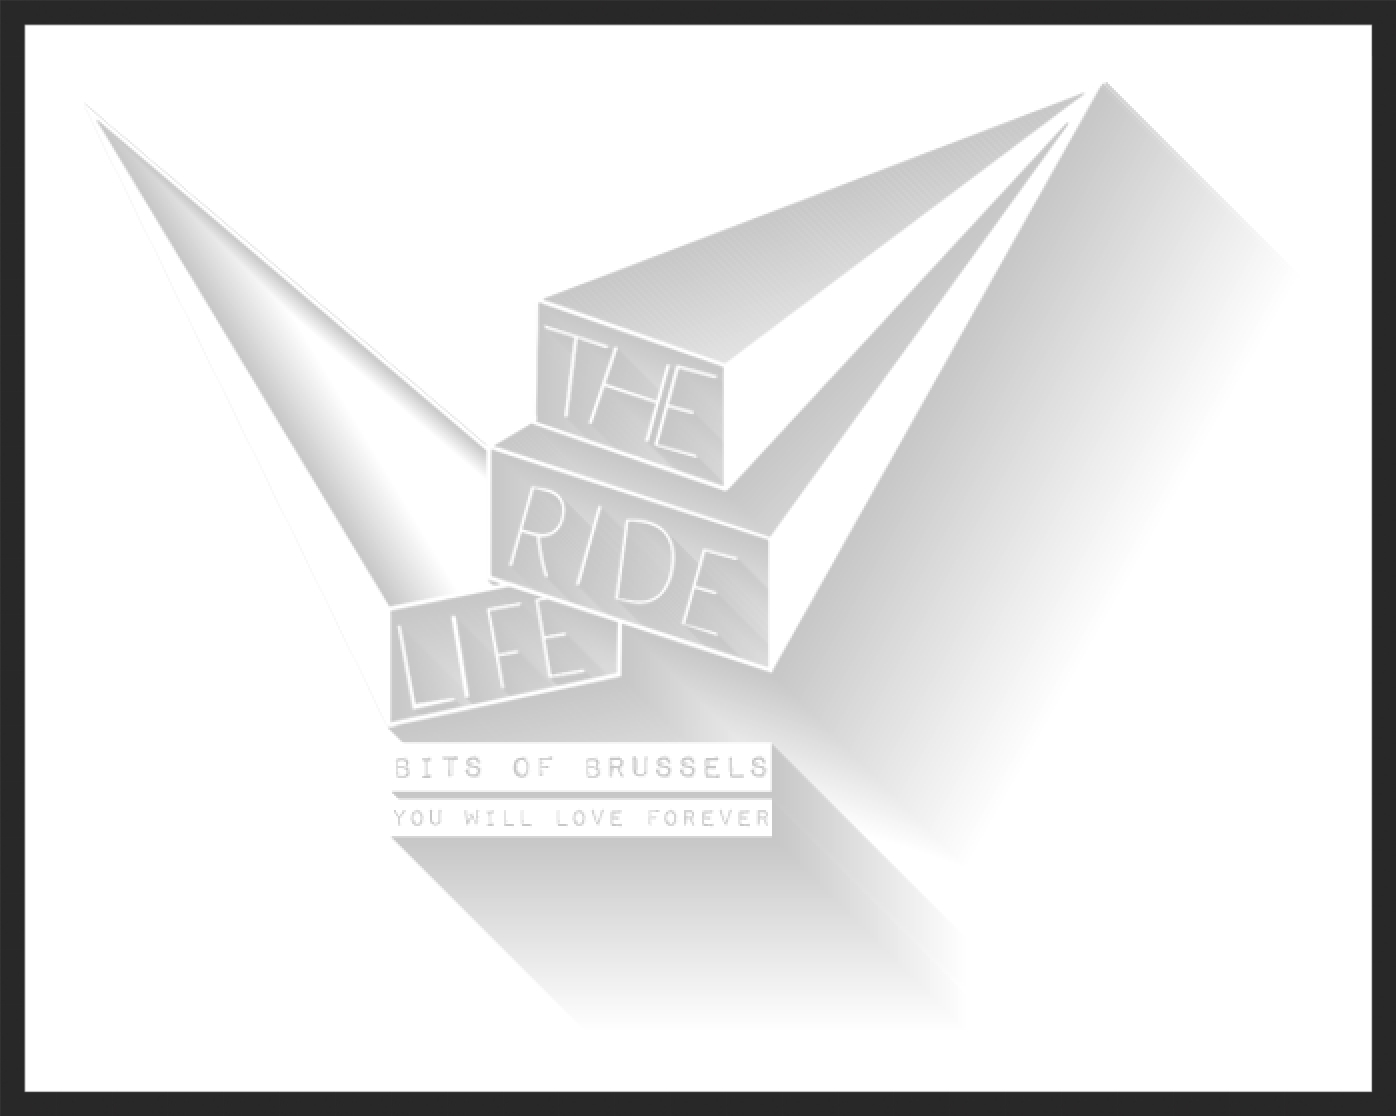 The Ride Life logo